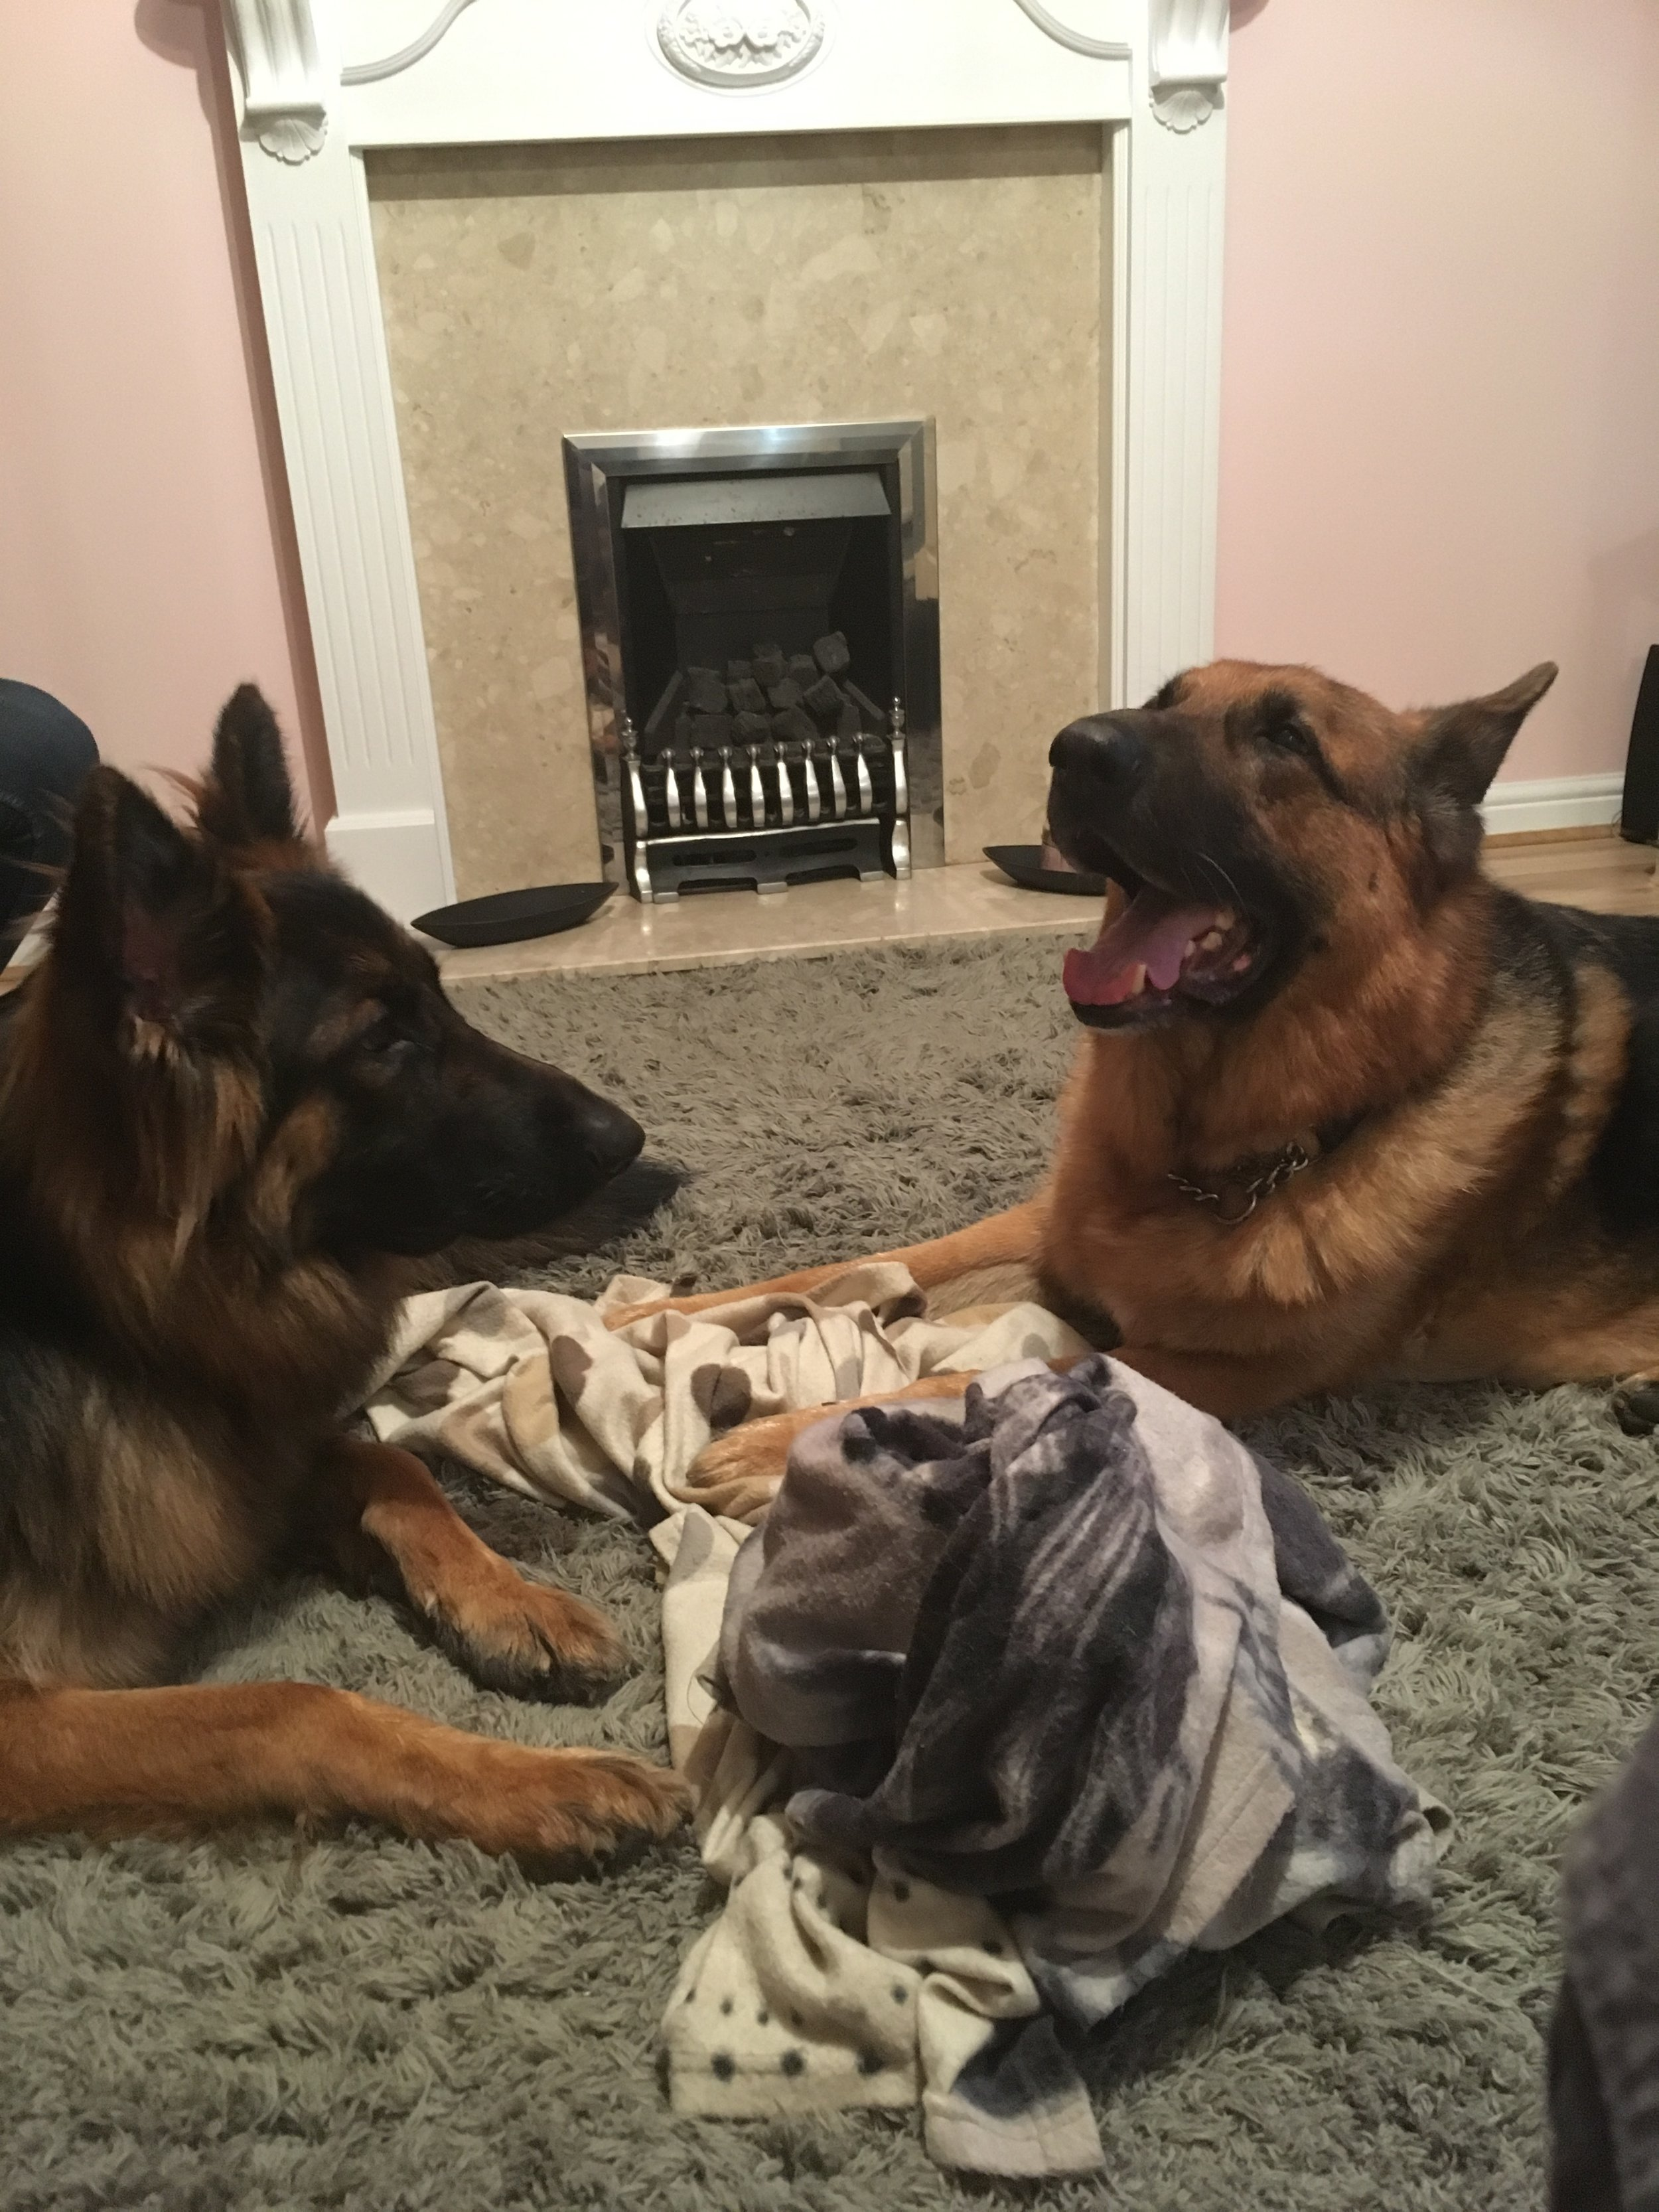 These are the two German shepherd dogs in question.